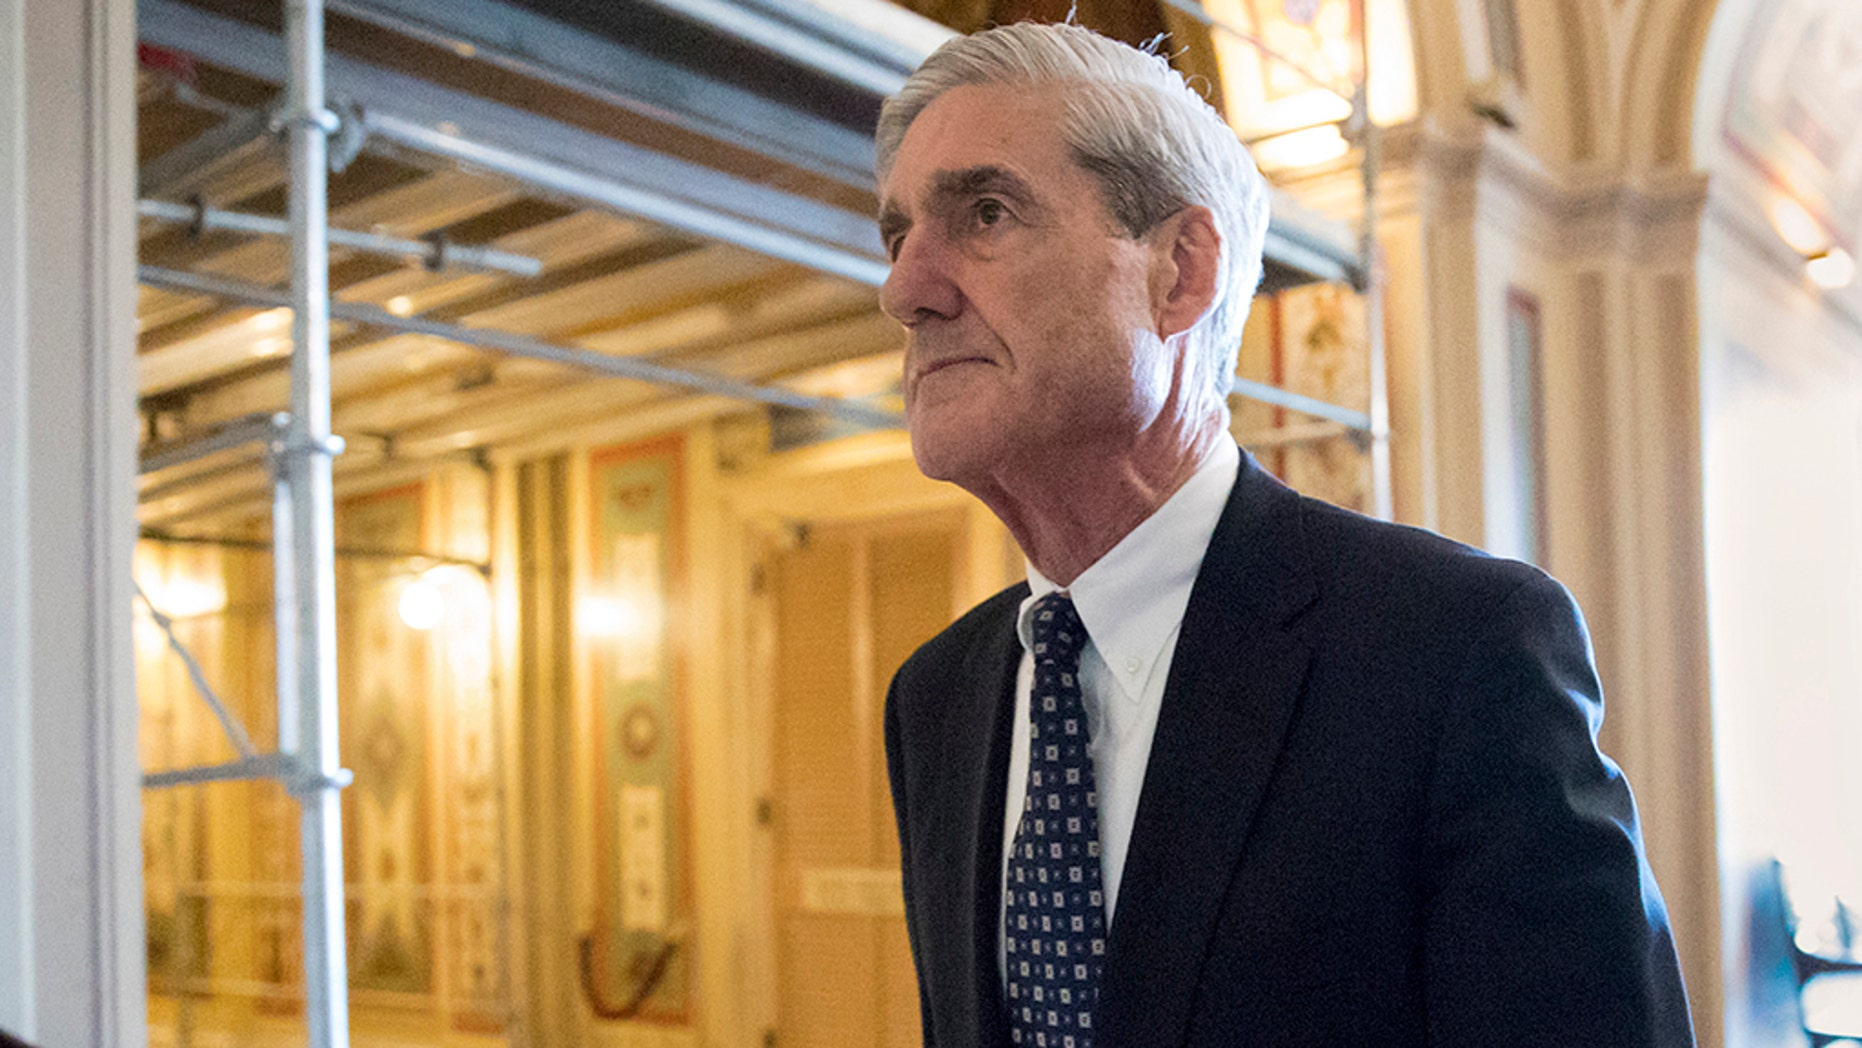 Special Counsel Robert Mueller. (AP Photo/J. Scott Applewhite, File)